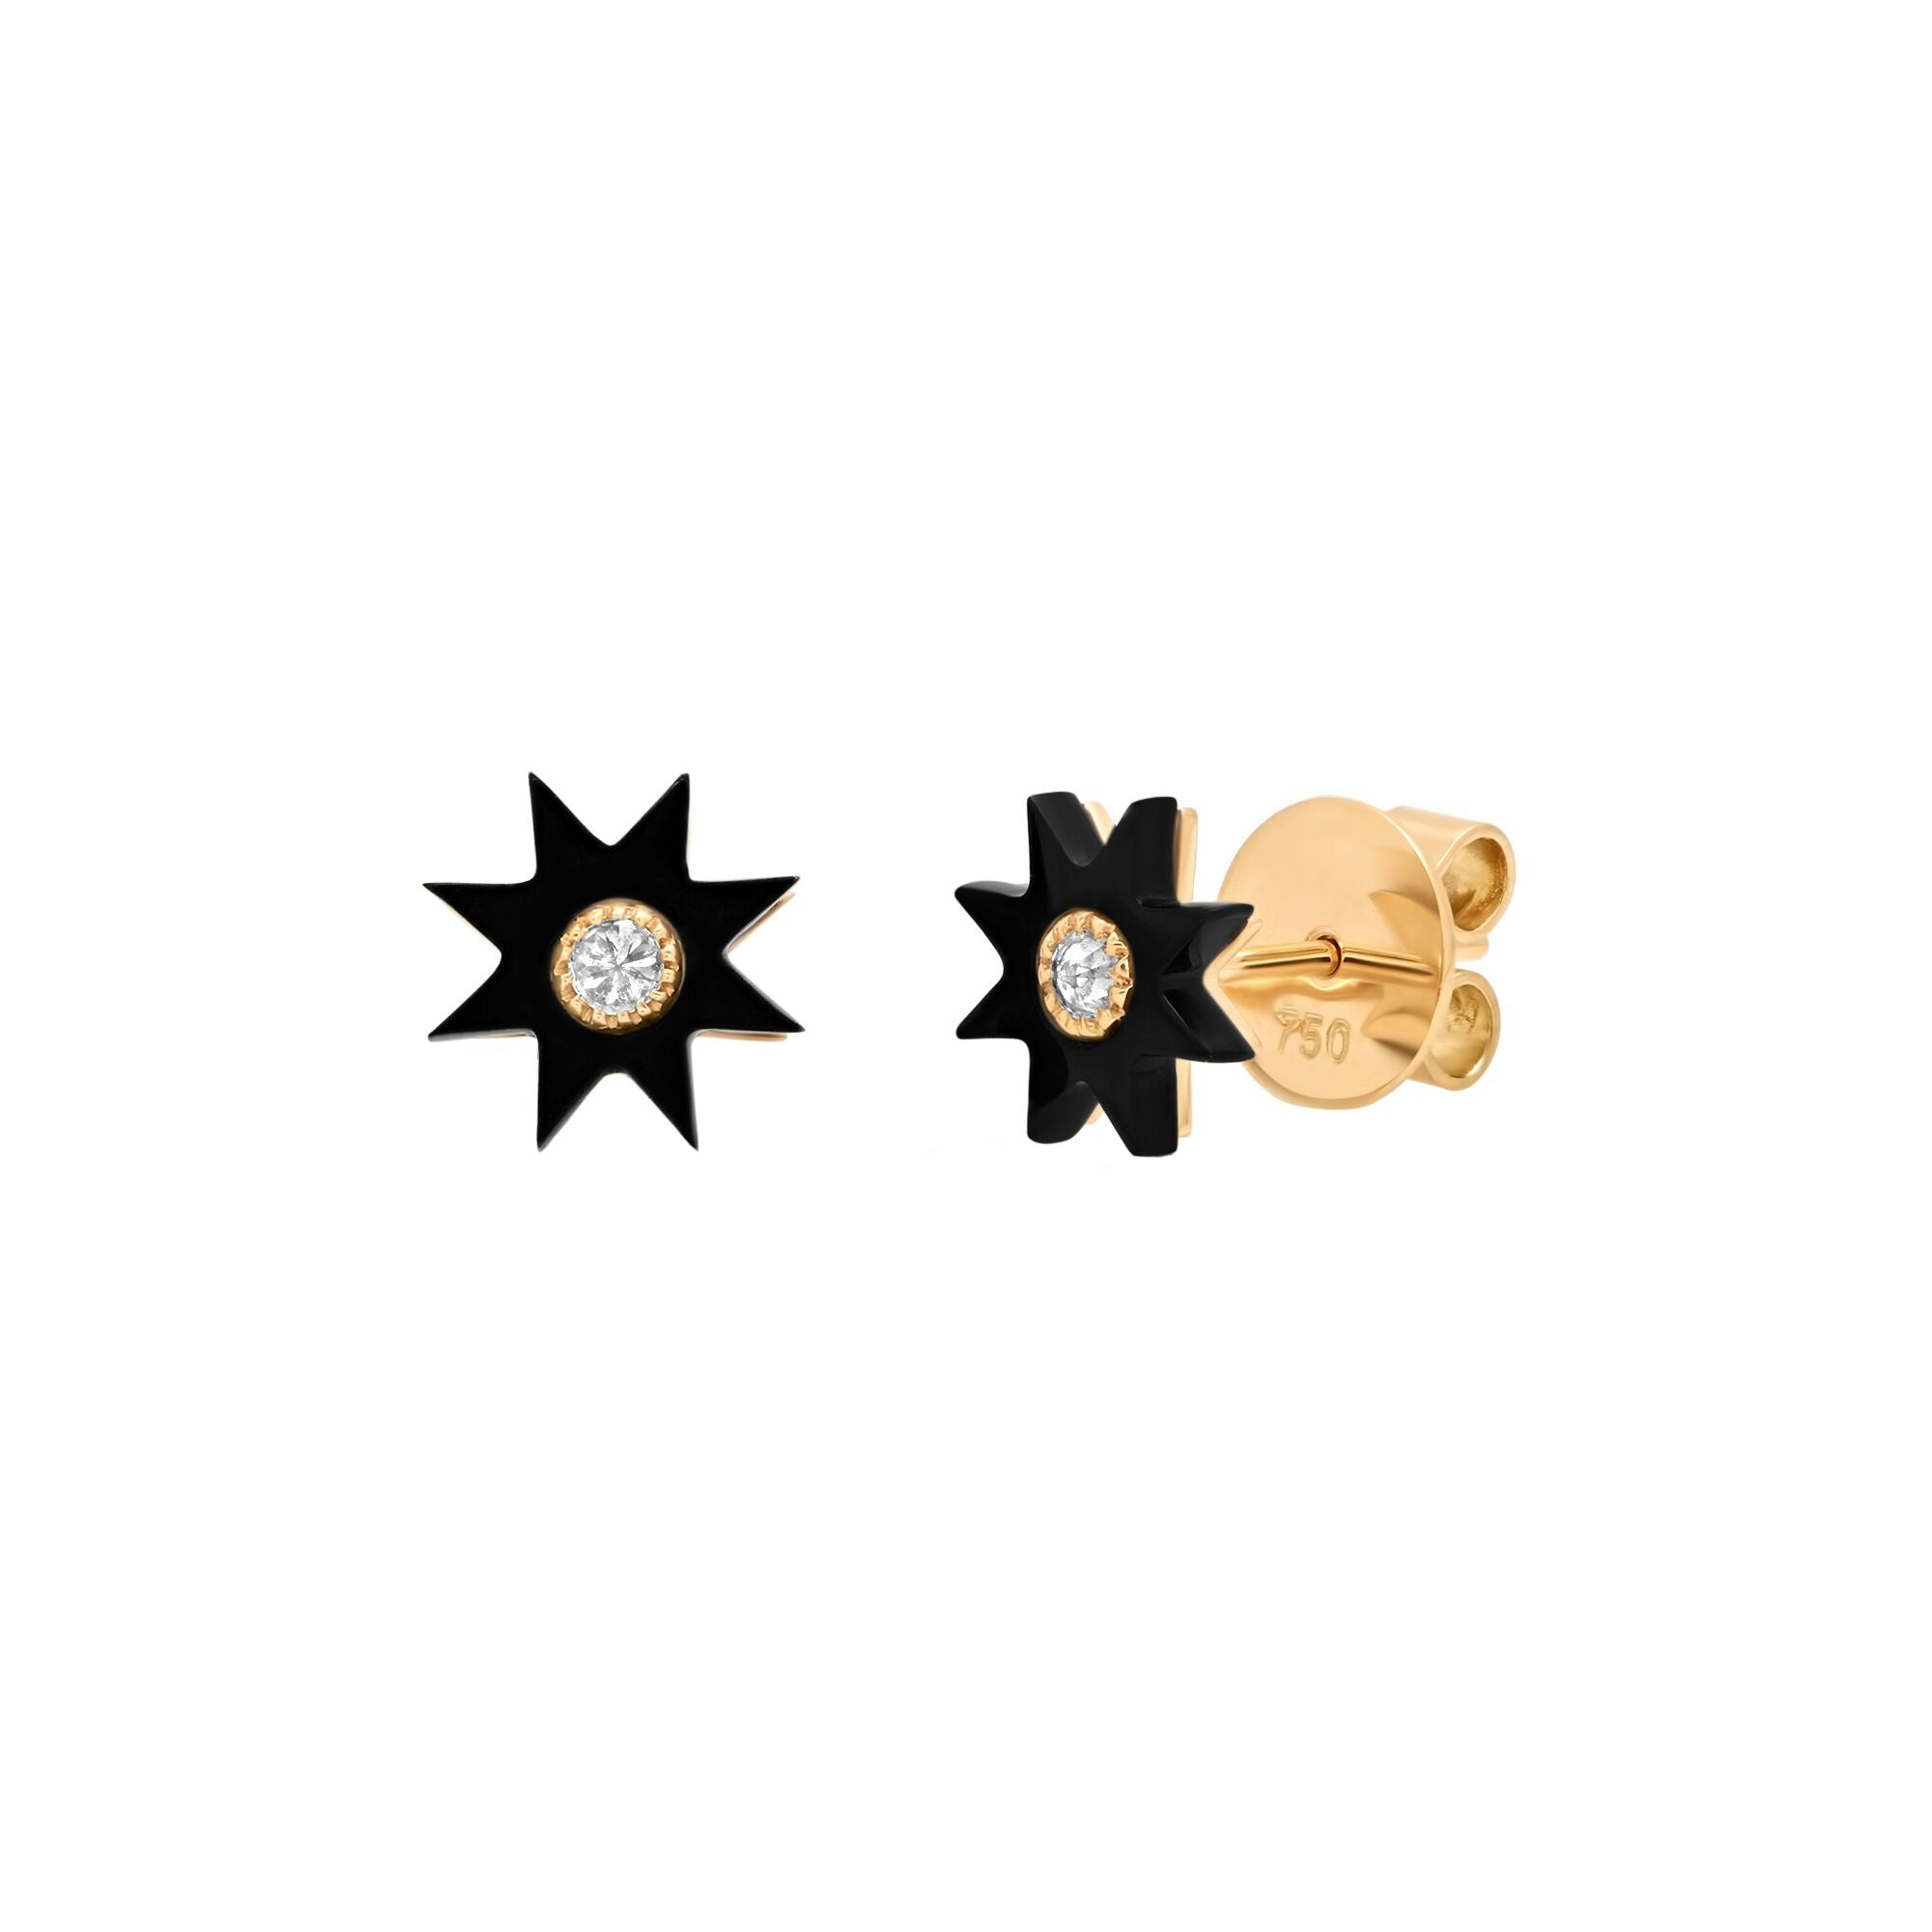 Onyx Black Star Studs by Colette for Broken English Jewelry